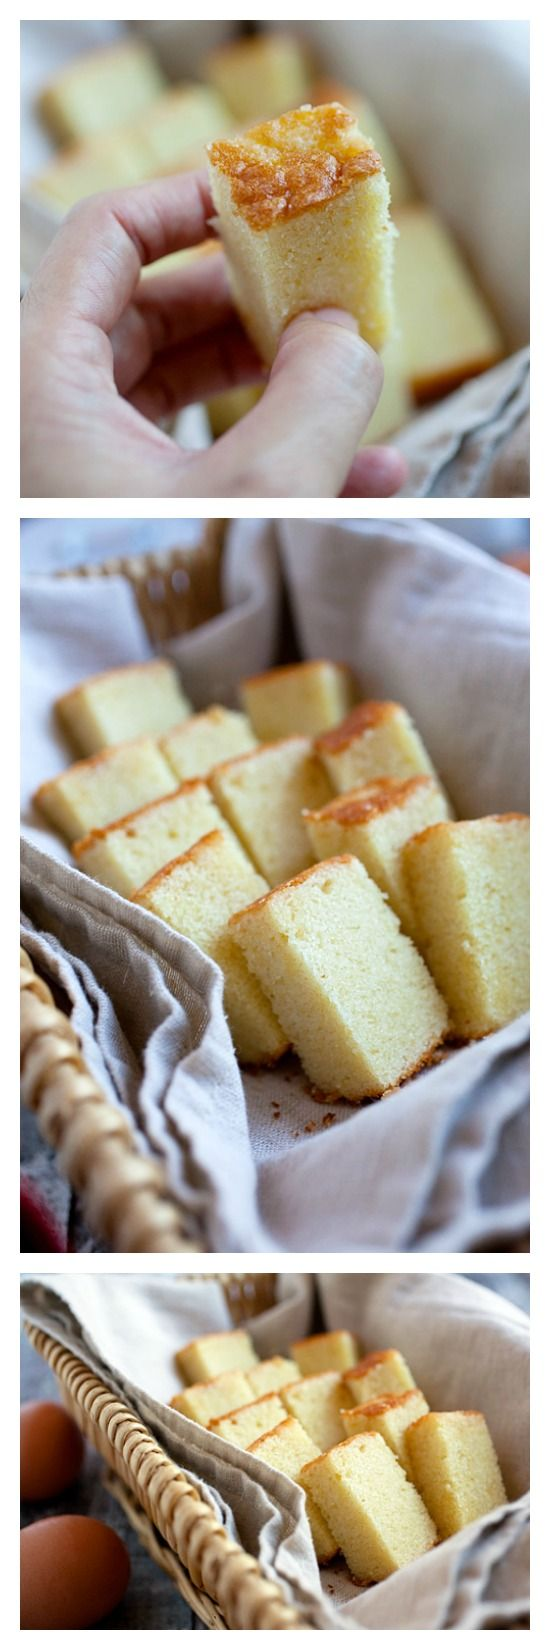 Butter Cake Recipe - the BEST butter cake, rich, super buttery, sweet, and sinfully good. Once you try this recipe, you will be instantly hooked. rasamalaysia.com